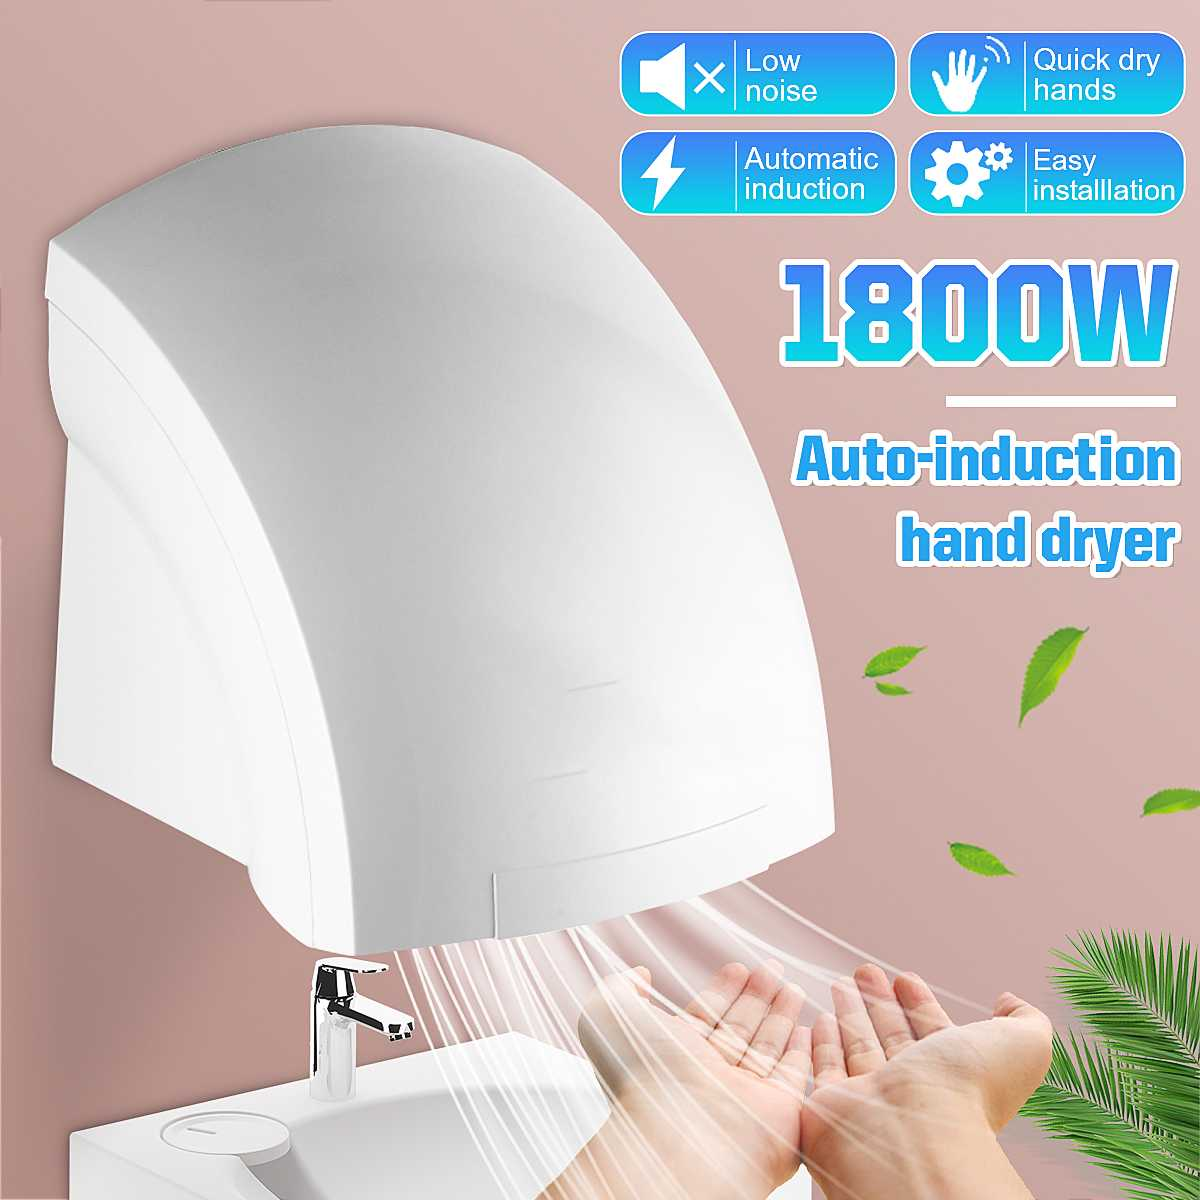 1800W 220V High Power Quick-drying Hotel Automatic Infared Sensor Hand Dryer Household Bathroom Hands Drying Device